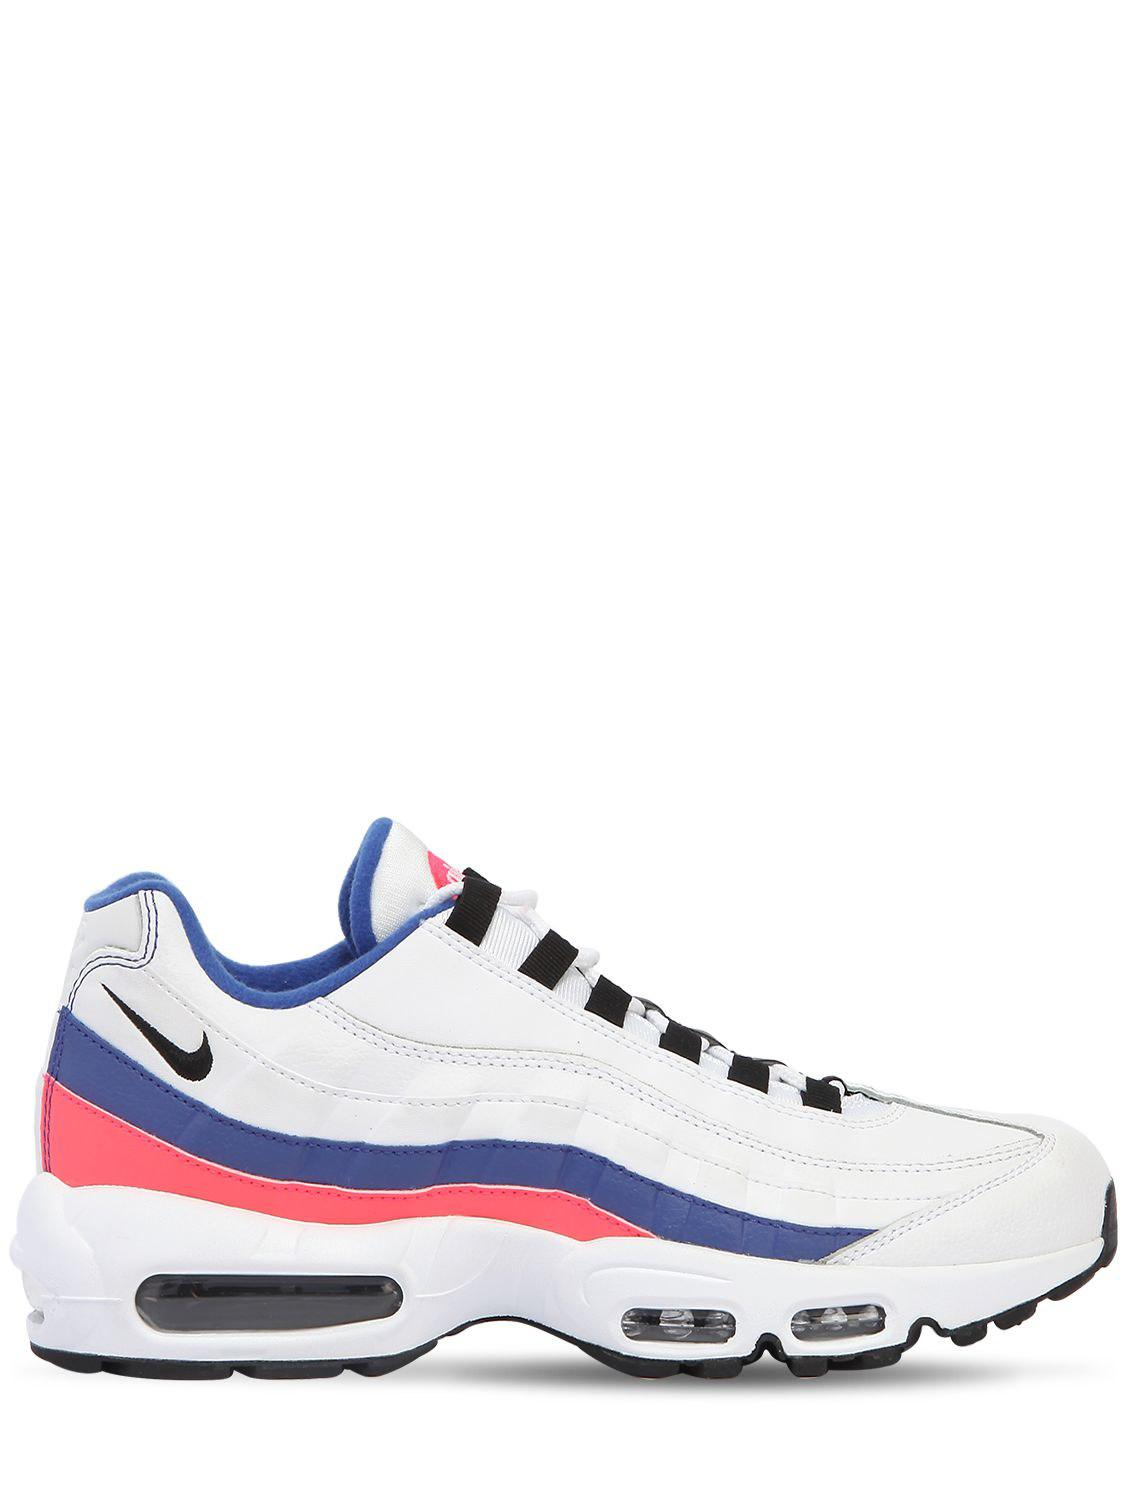 5052199faf8 Nike Air Max 95 Essential Sneakers in Blue for Men - Lyst